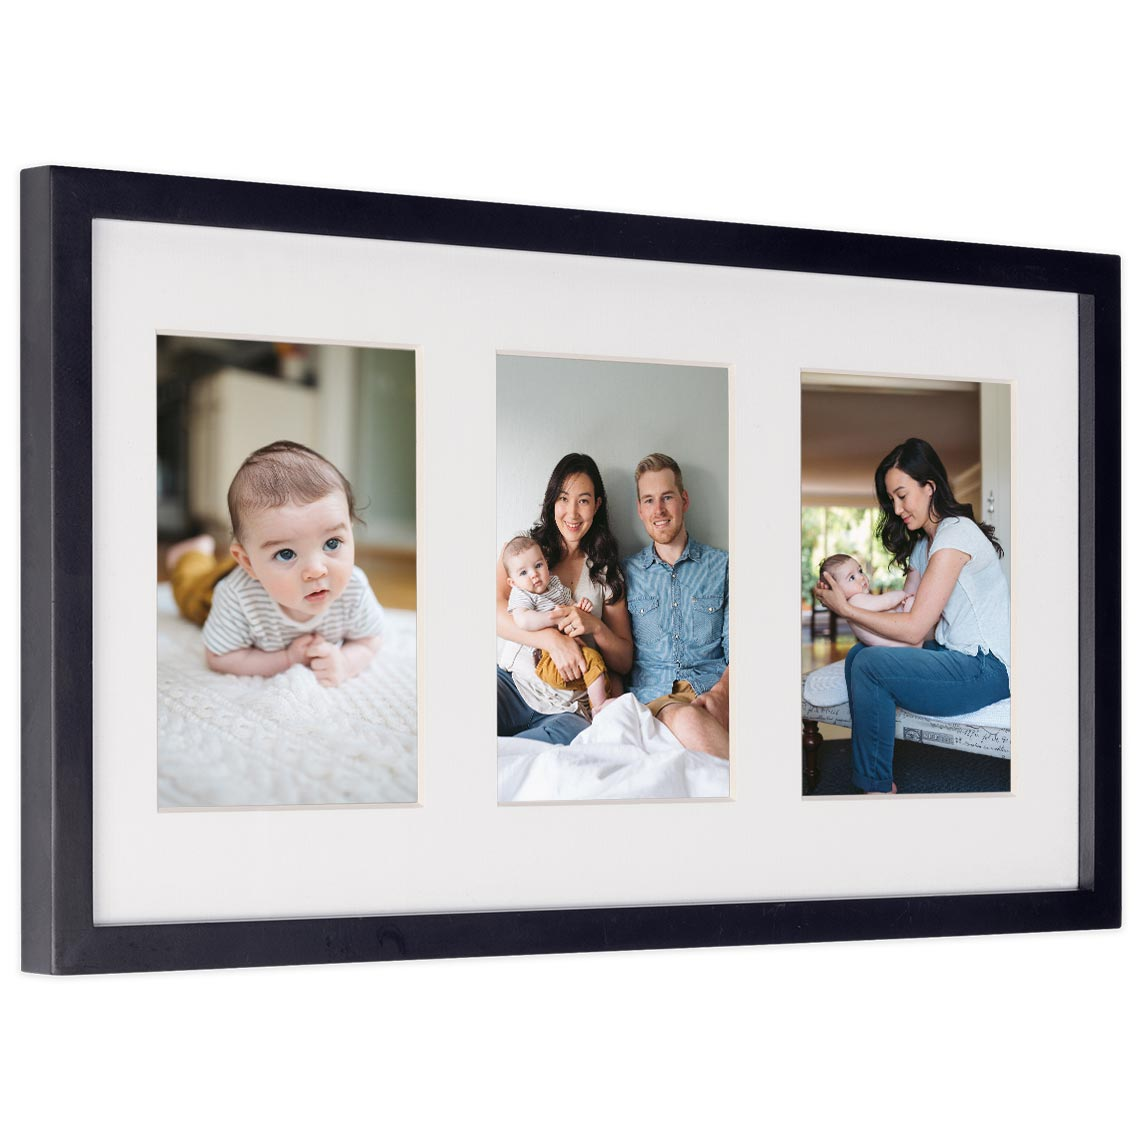 3-in-1 Framed Print